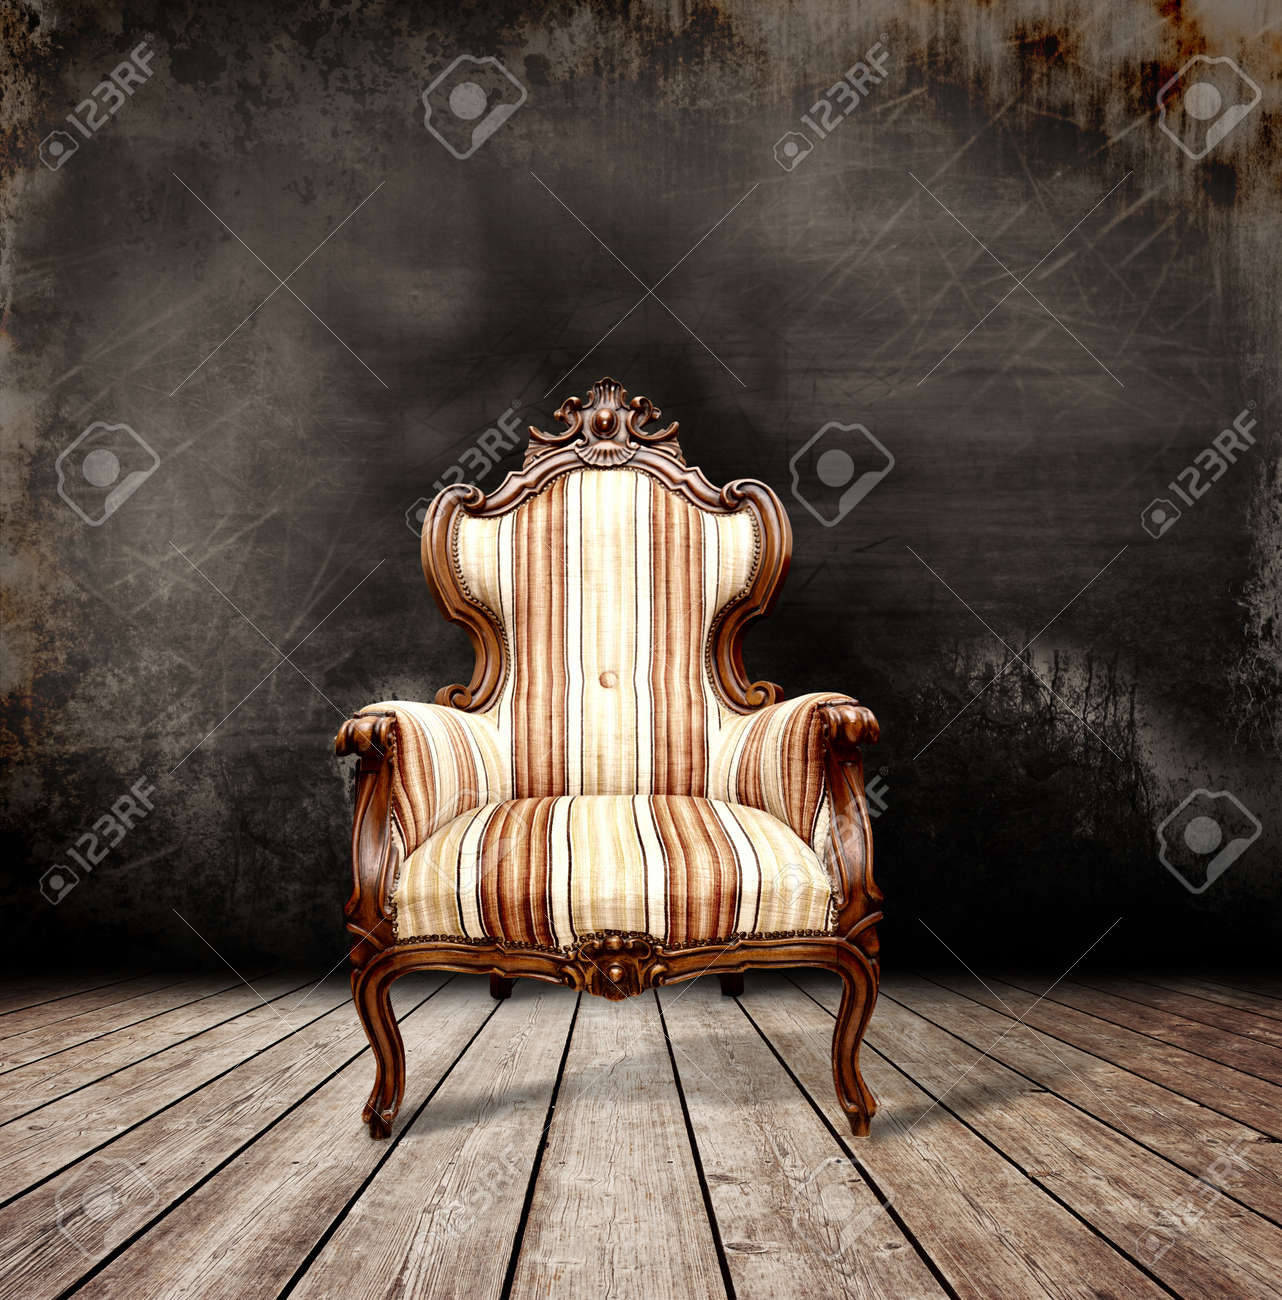 Old sofa in a antique room Stock Photo - 9825315